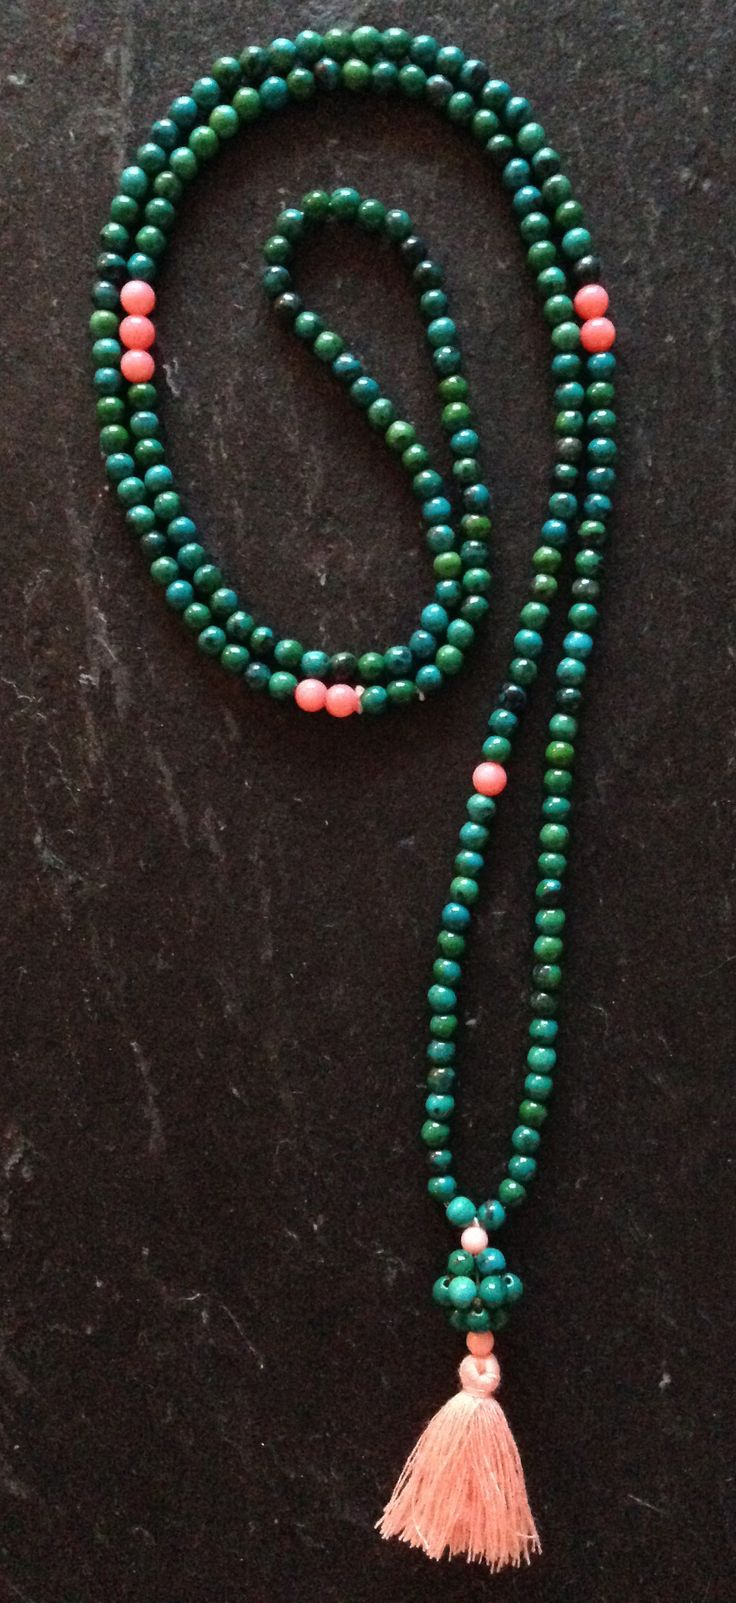 Reuse of beads from a bracelet became a brand new tassel necklace :)